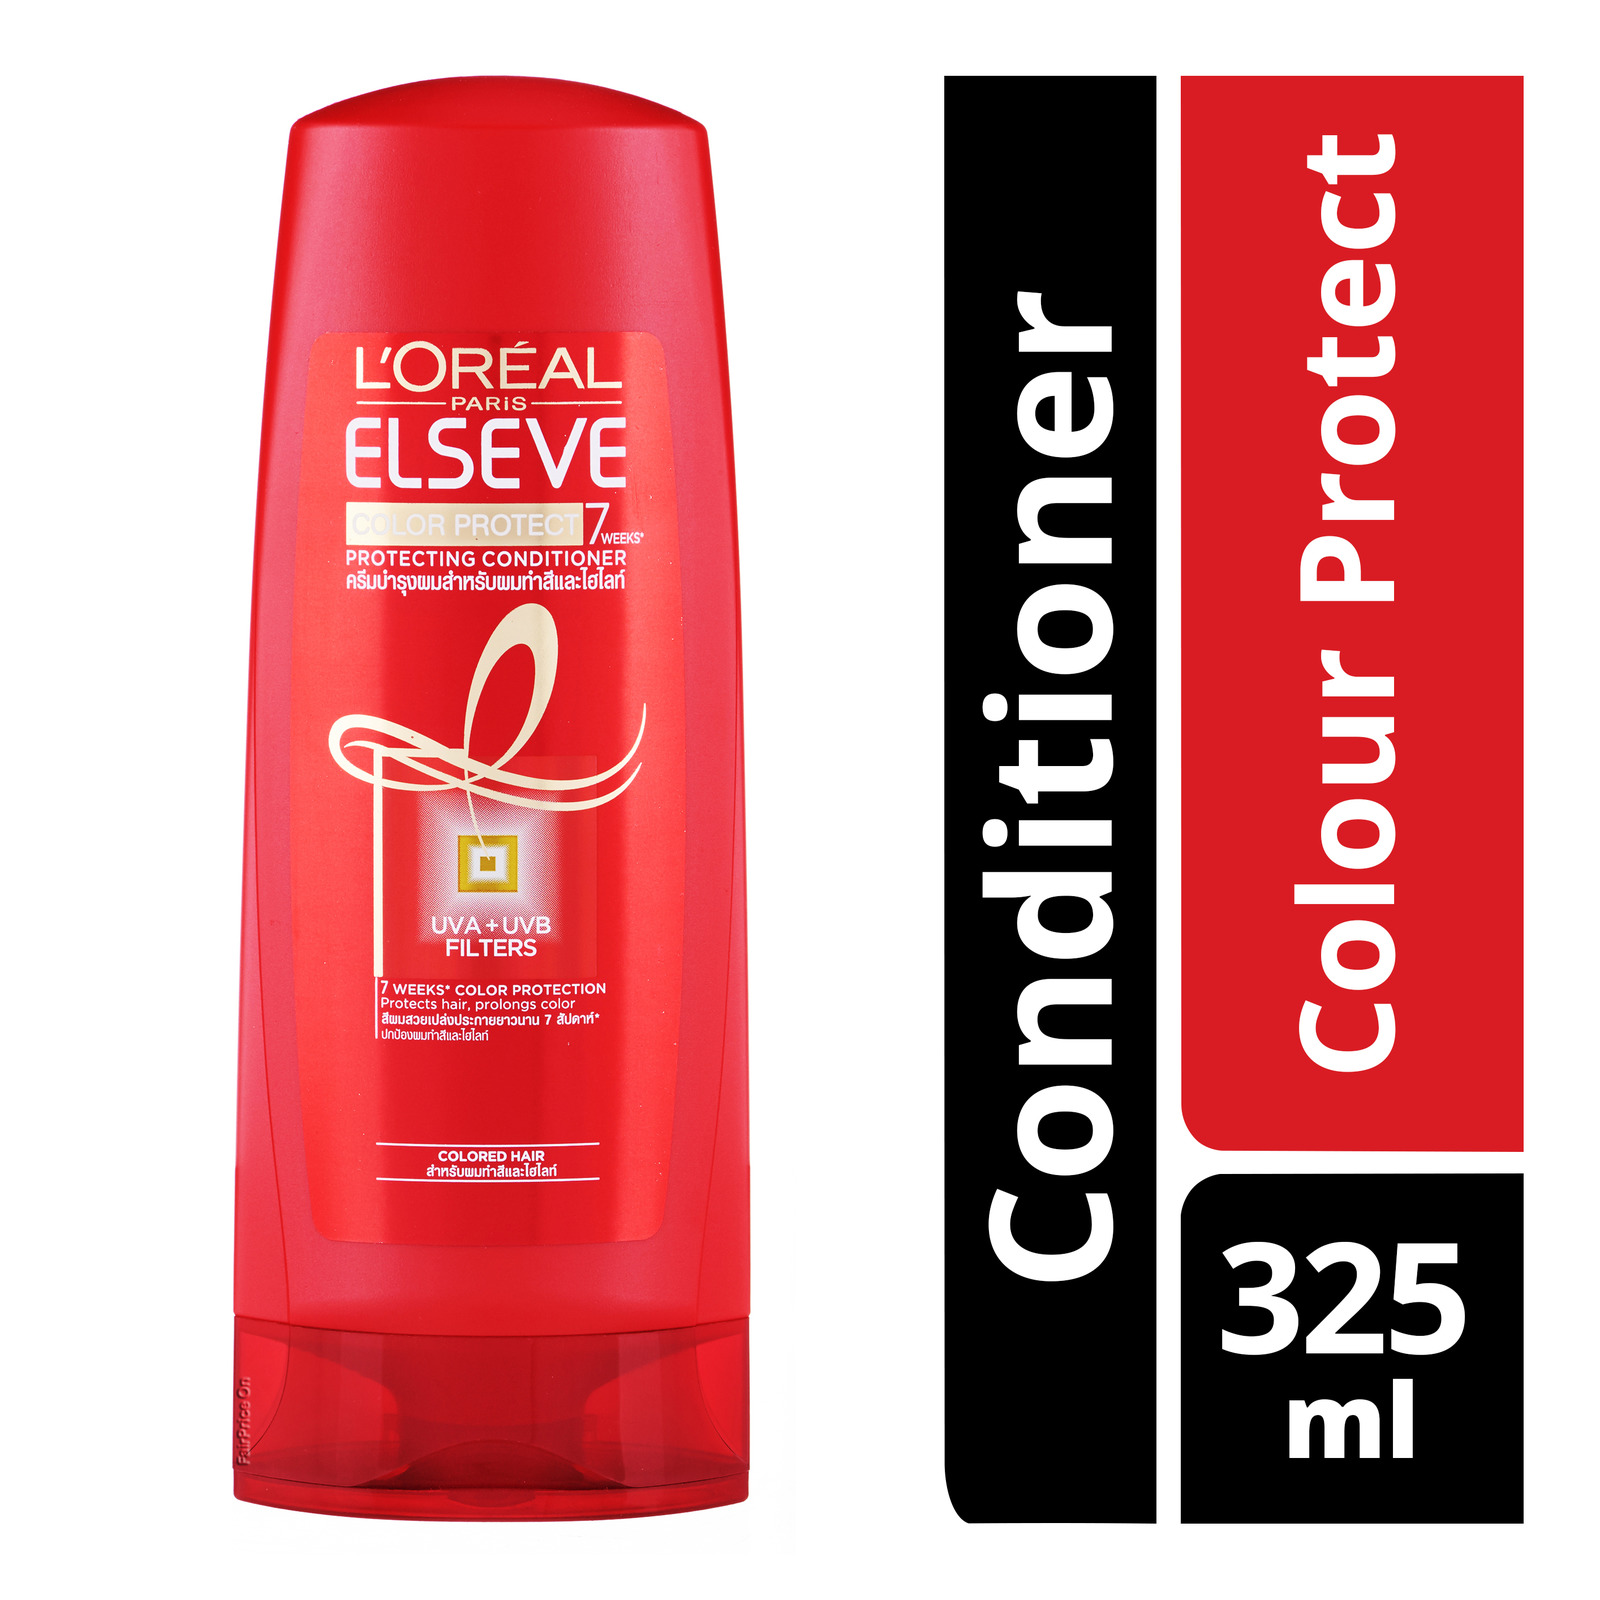 L'Oreal Paris Elseve Conditioner - Colour Protect